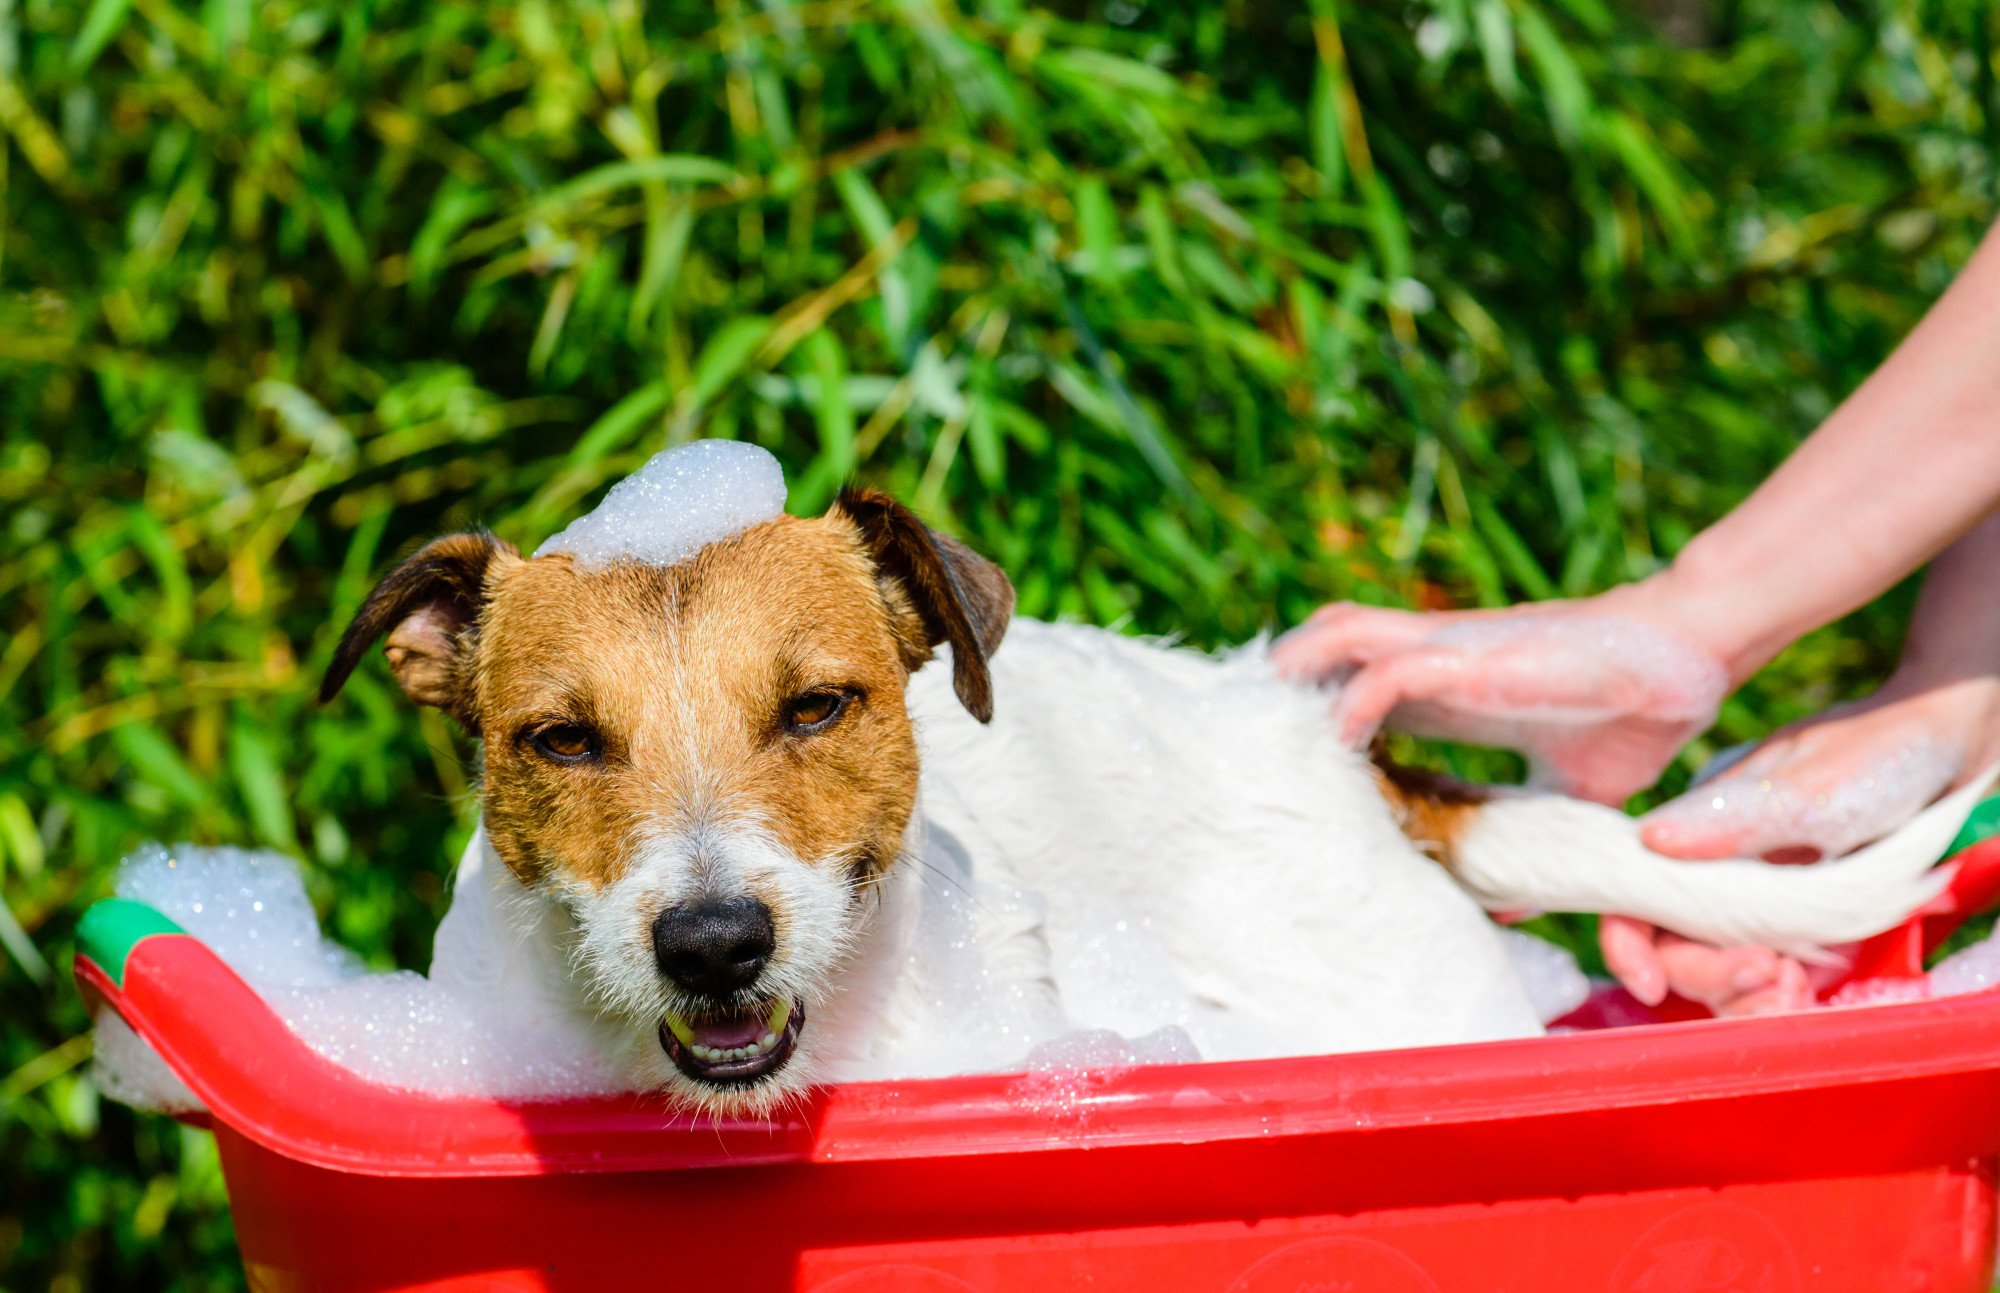 The Top 10 Tips for Getting Rid of Dog Smell in Your Home